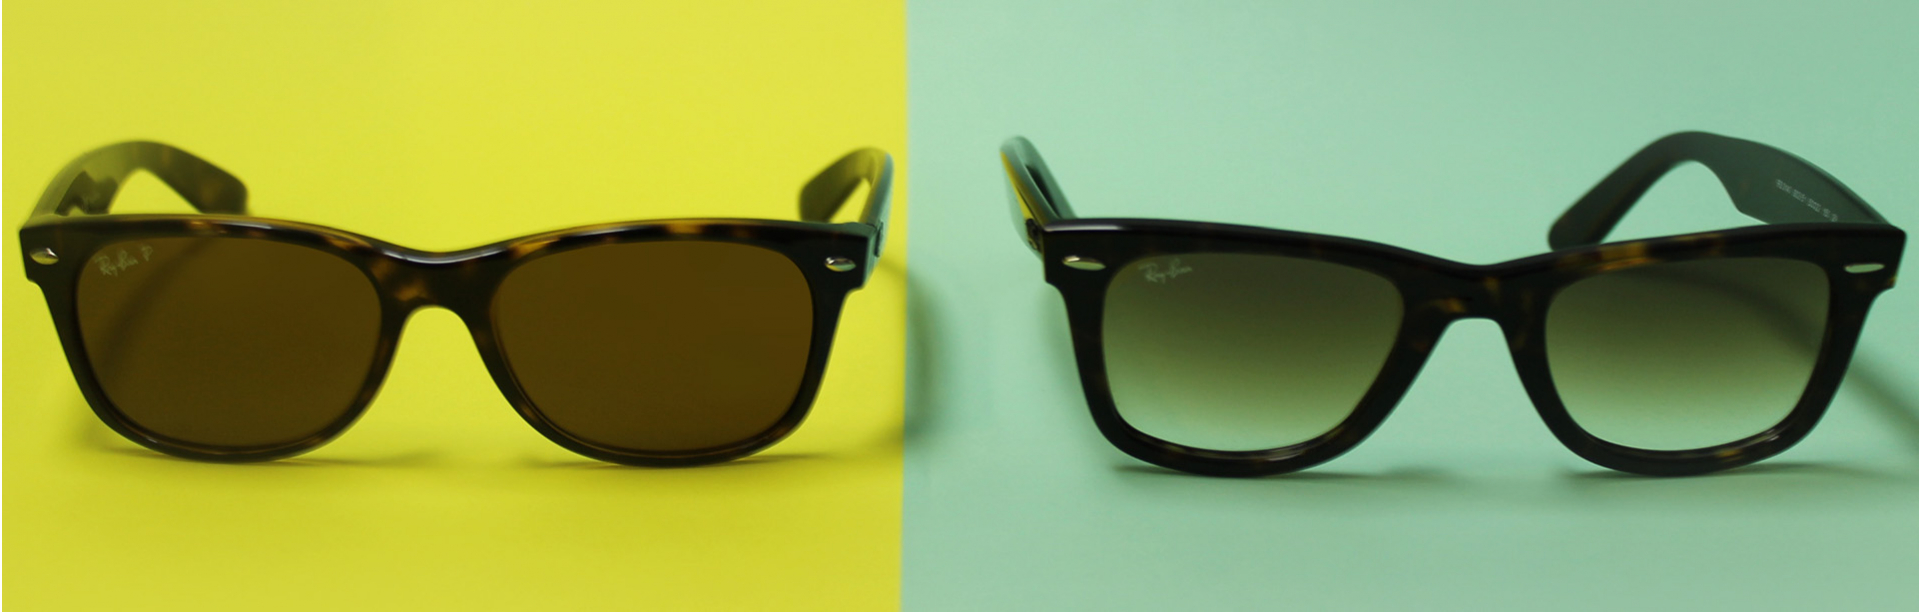 Ray-Ban Wayfarer Sunglasses | Ray-Ban Wayfarer and New Wayfarer | Ray-Ban Wayfarer vs New Wayfarer Banner | EyeWearthese